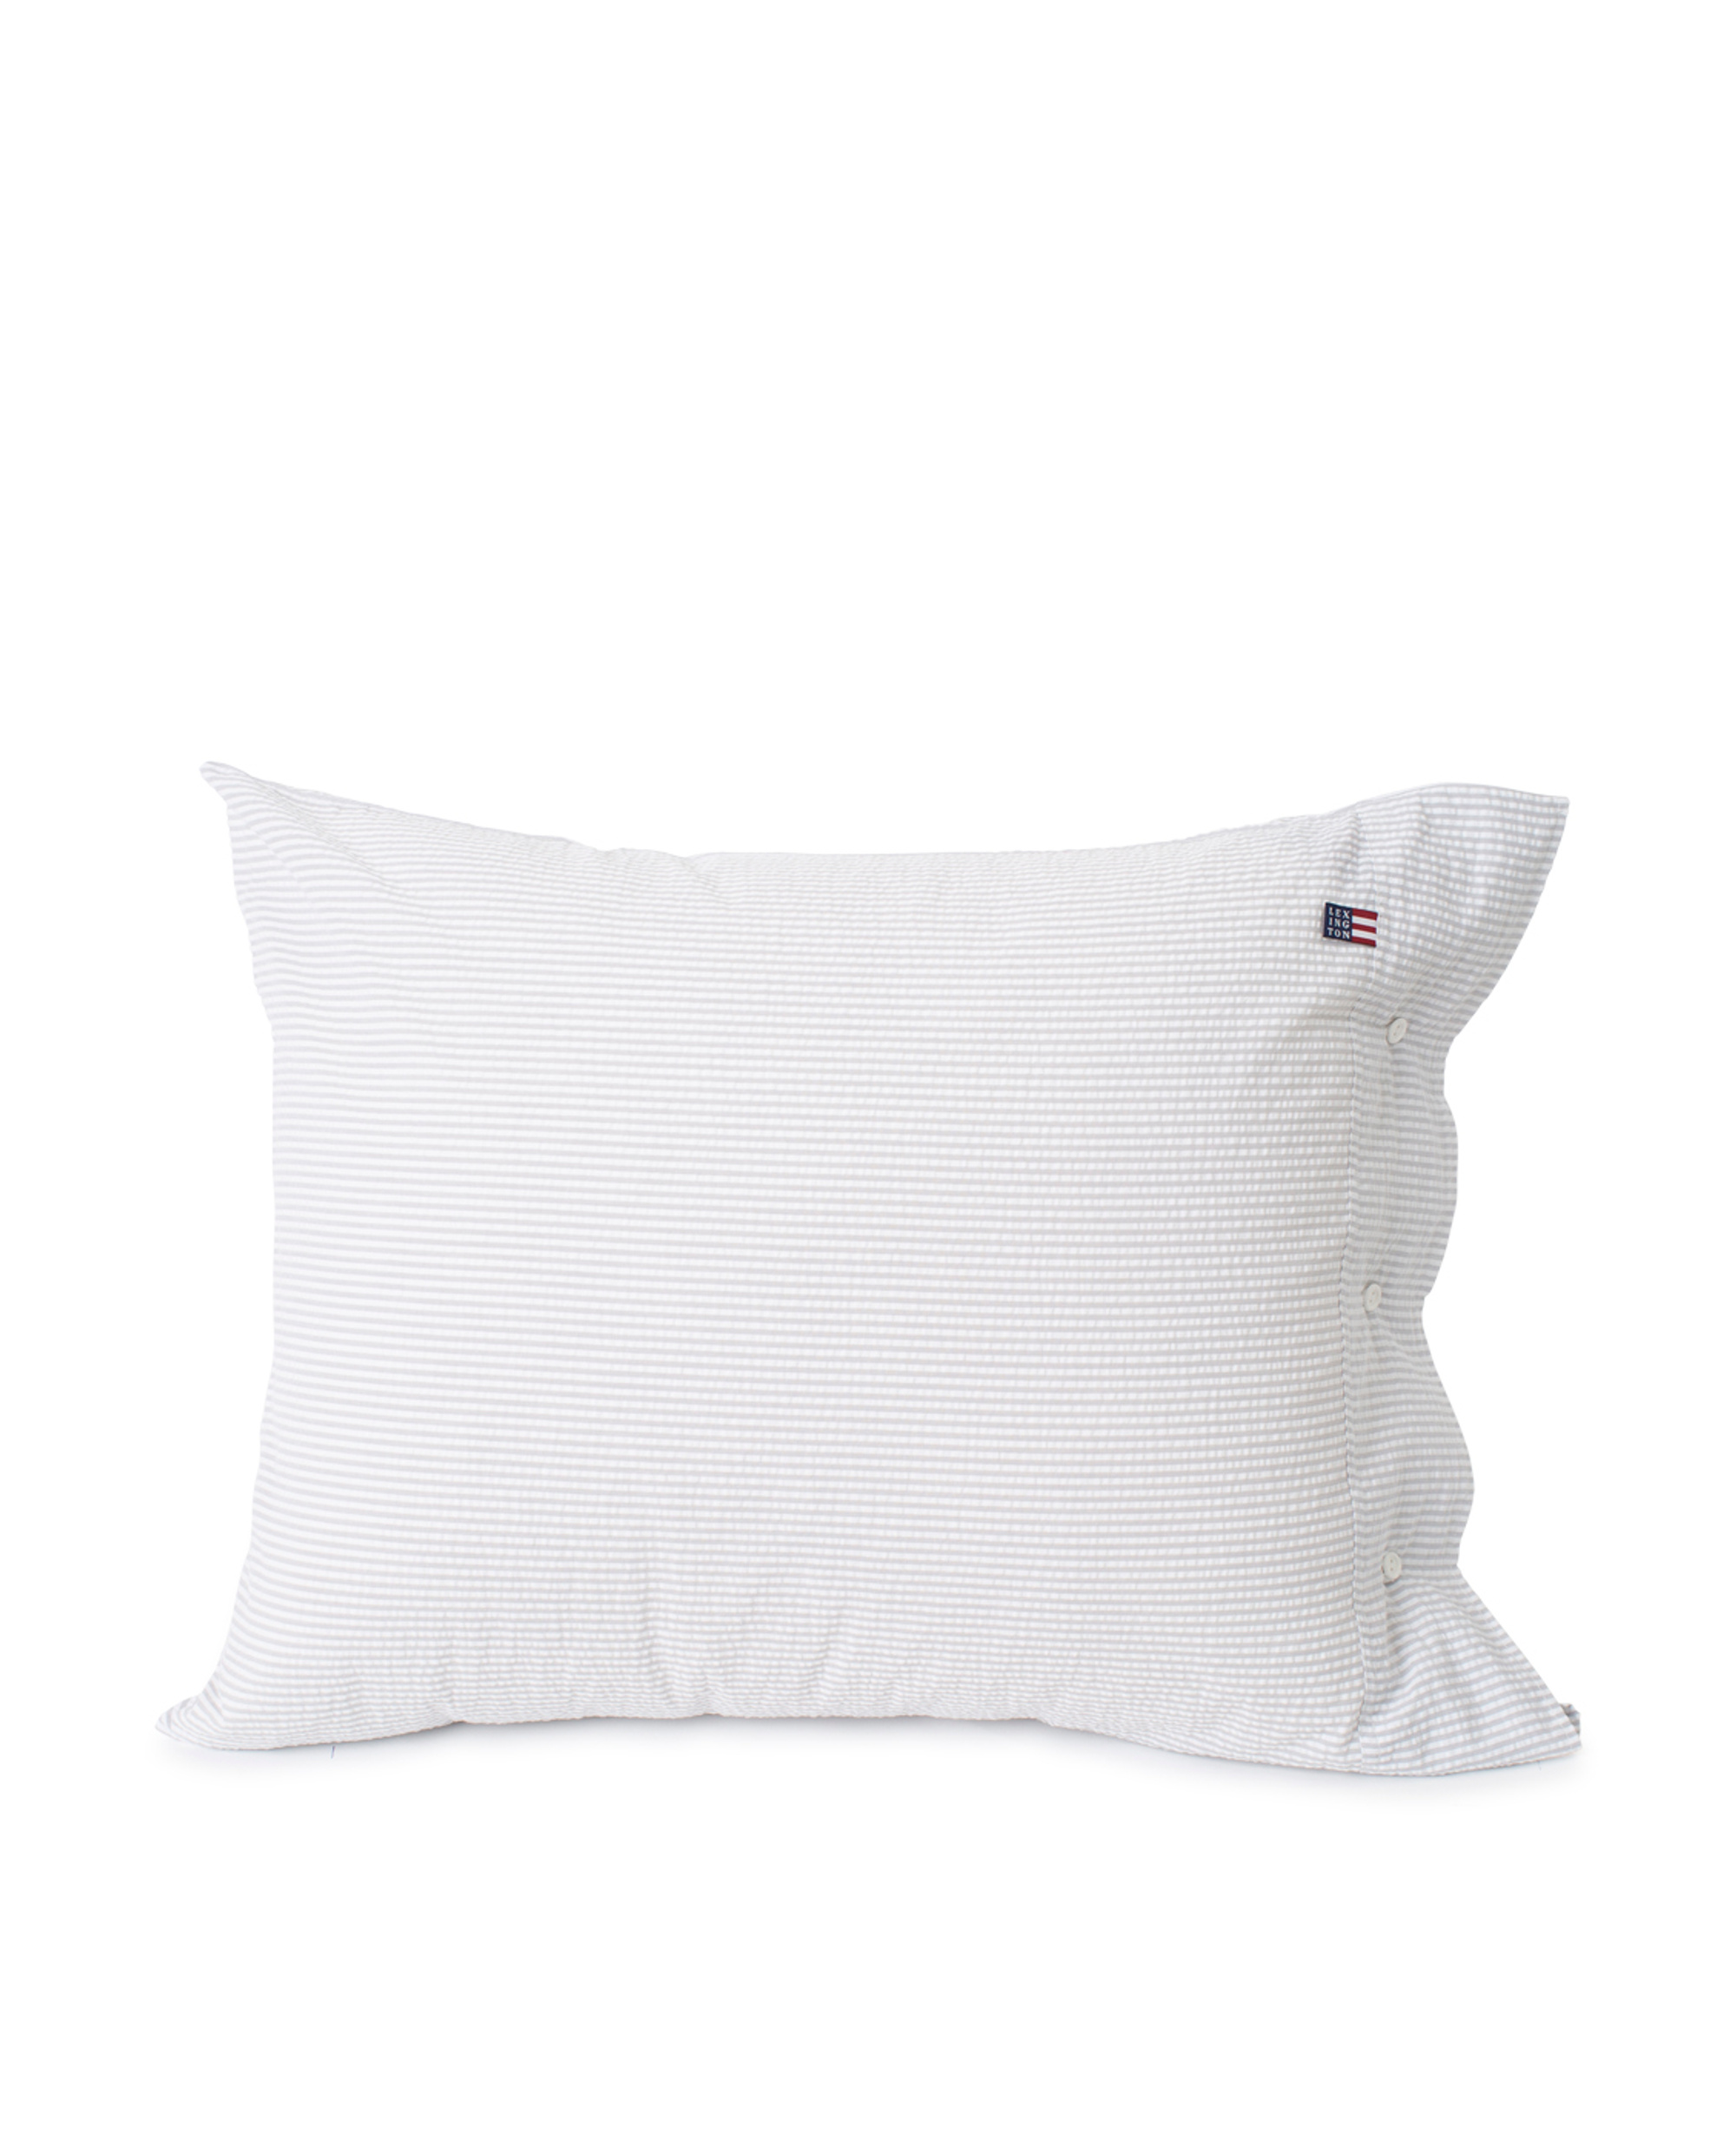 Light Gray/White Striped Cotton Seersucker Pillowcase